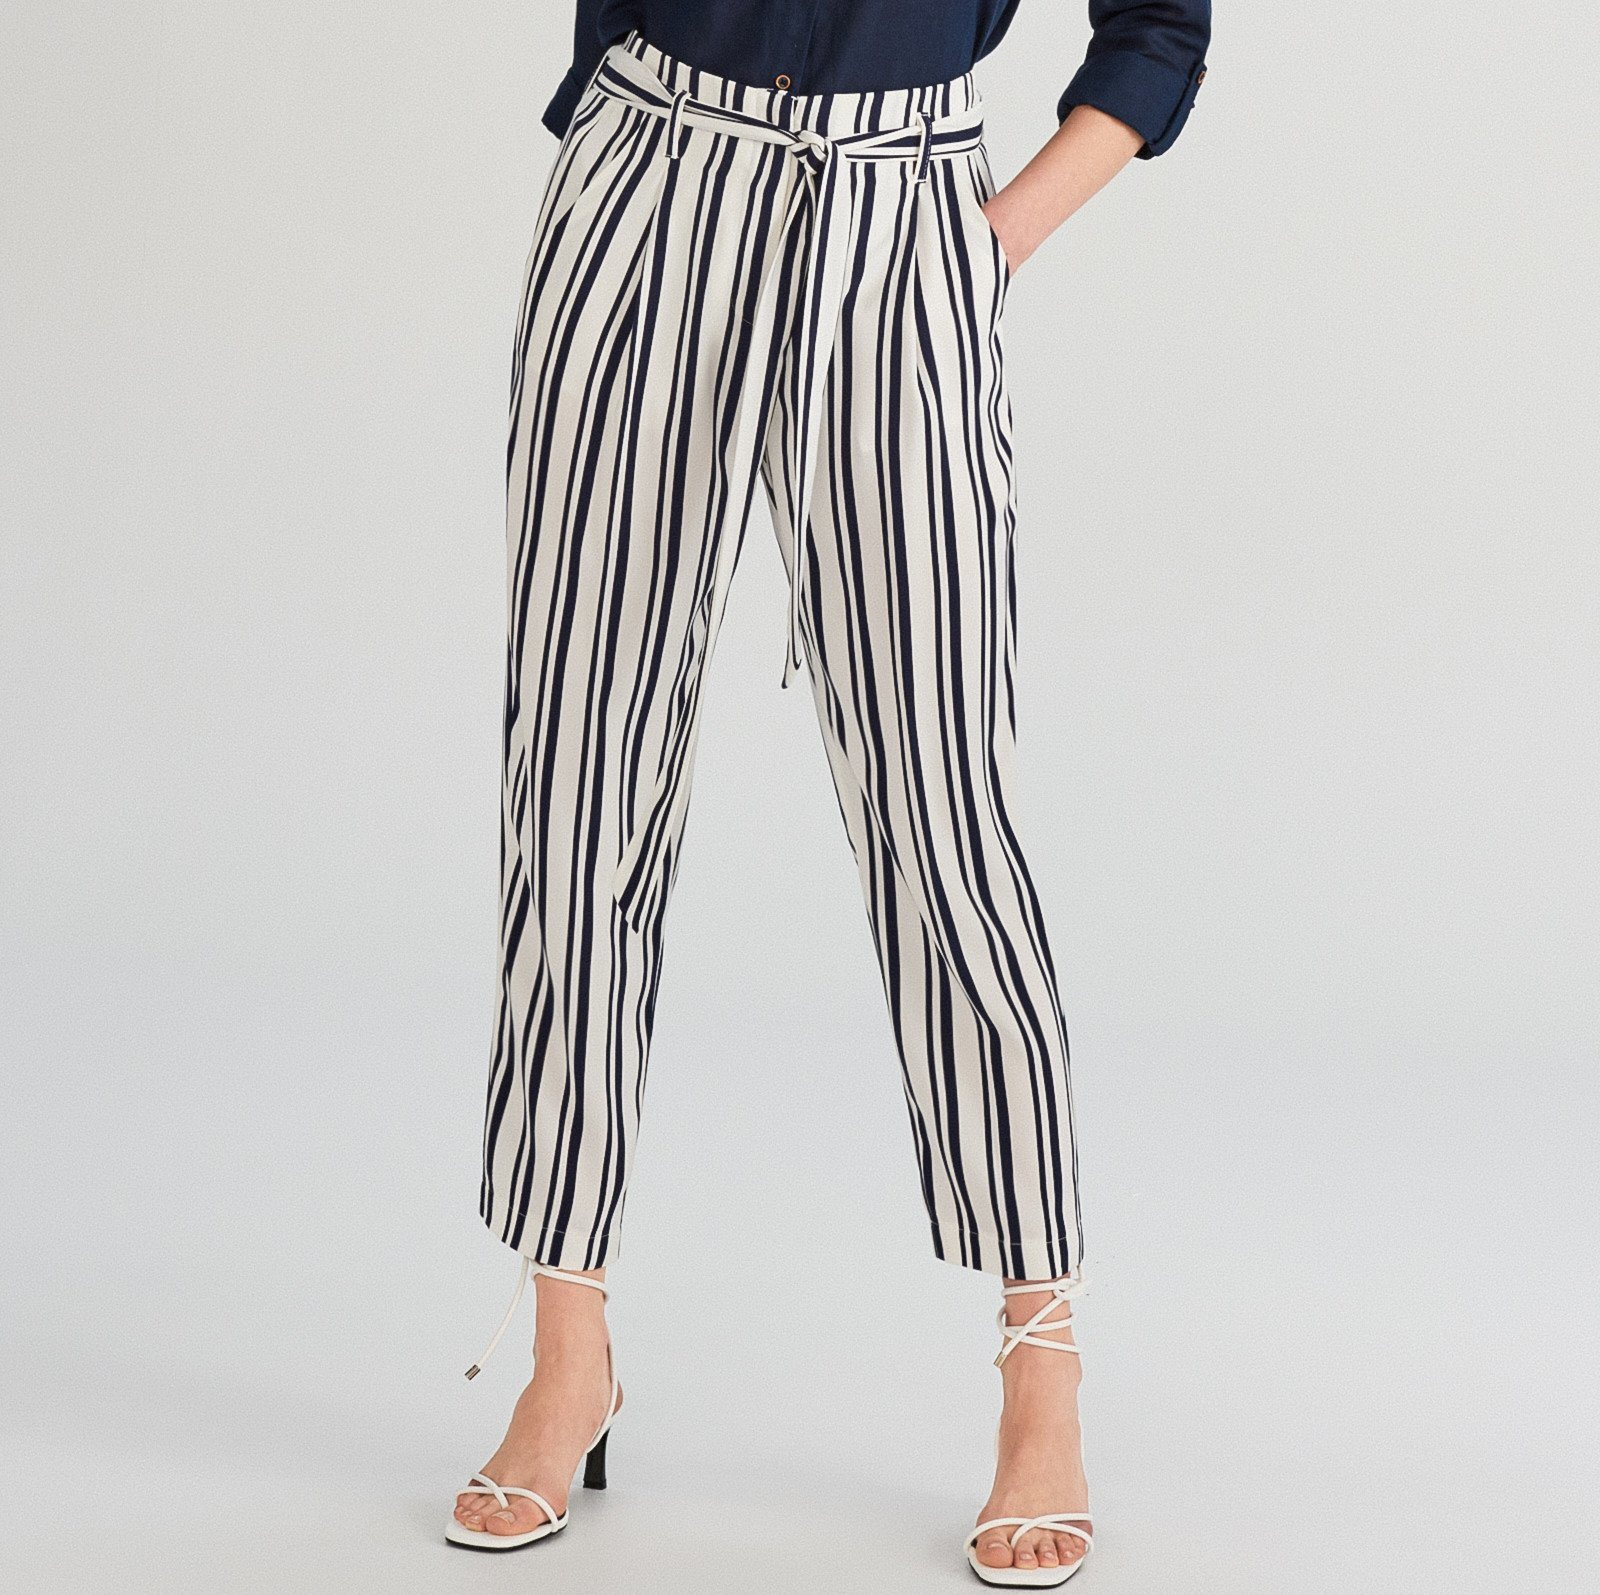 China Factory Fashion Designs Office Stripe Pencil Skinny Cropped Pants Trousers For Women China Pant And Work Trousers Price